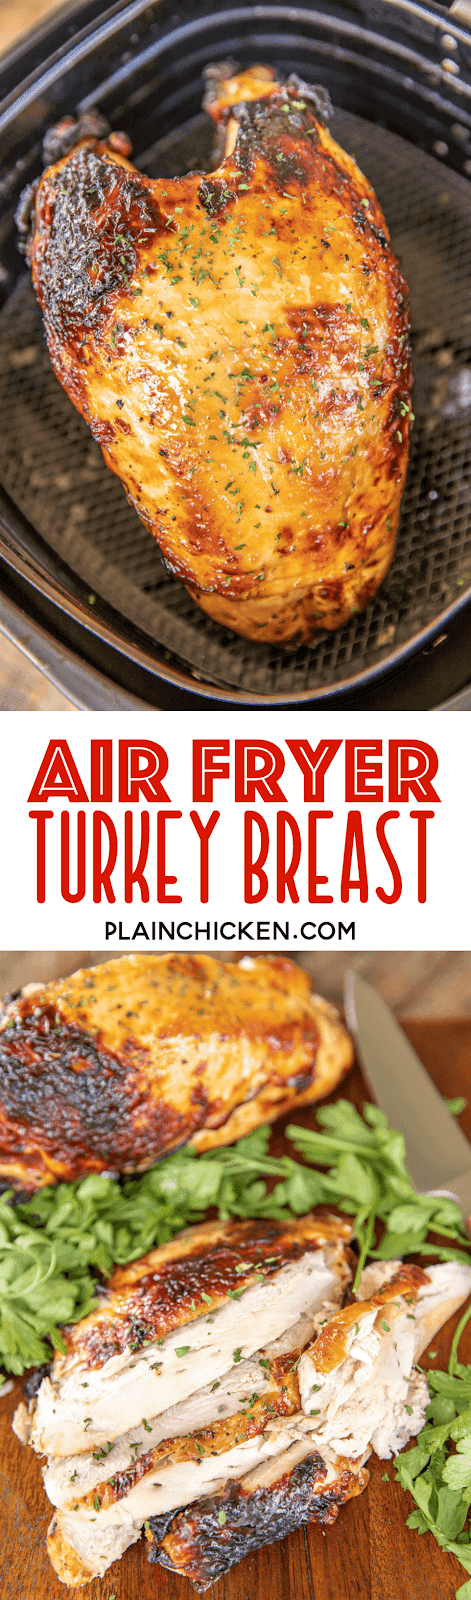 collage of 2 photos of air fryer turkey breast